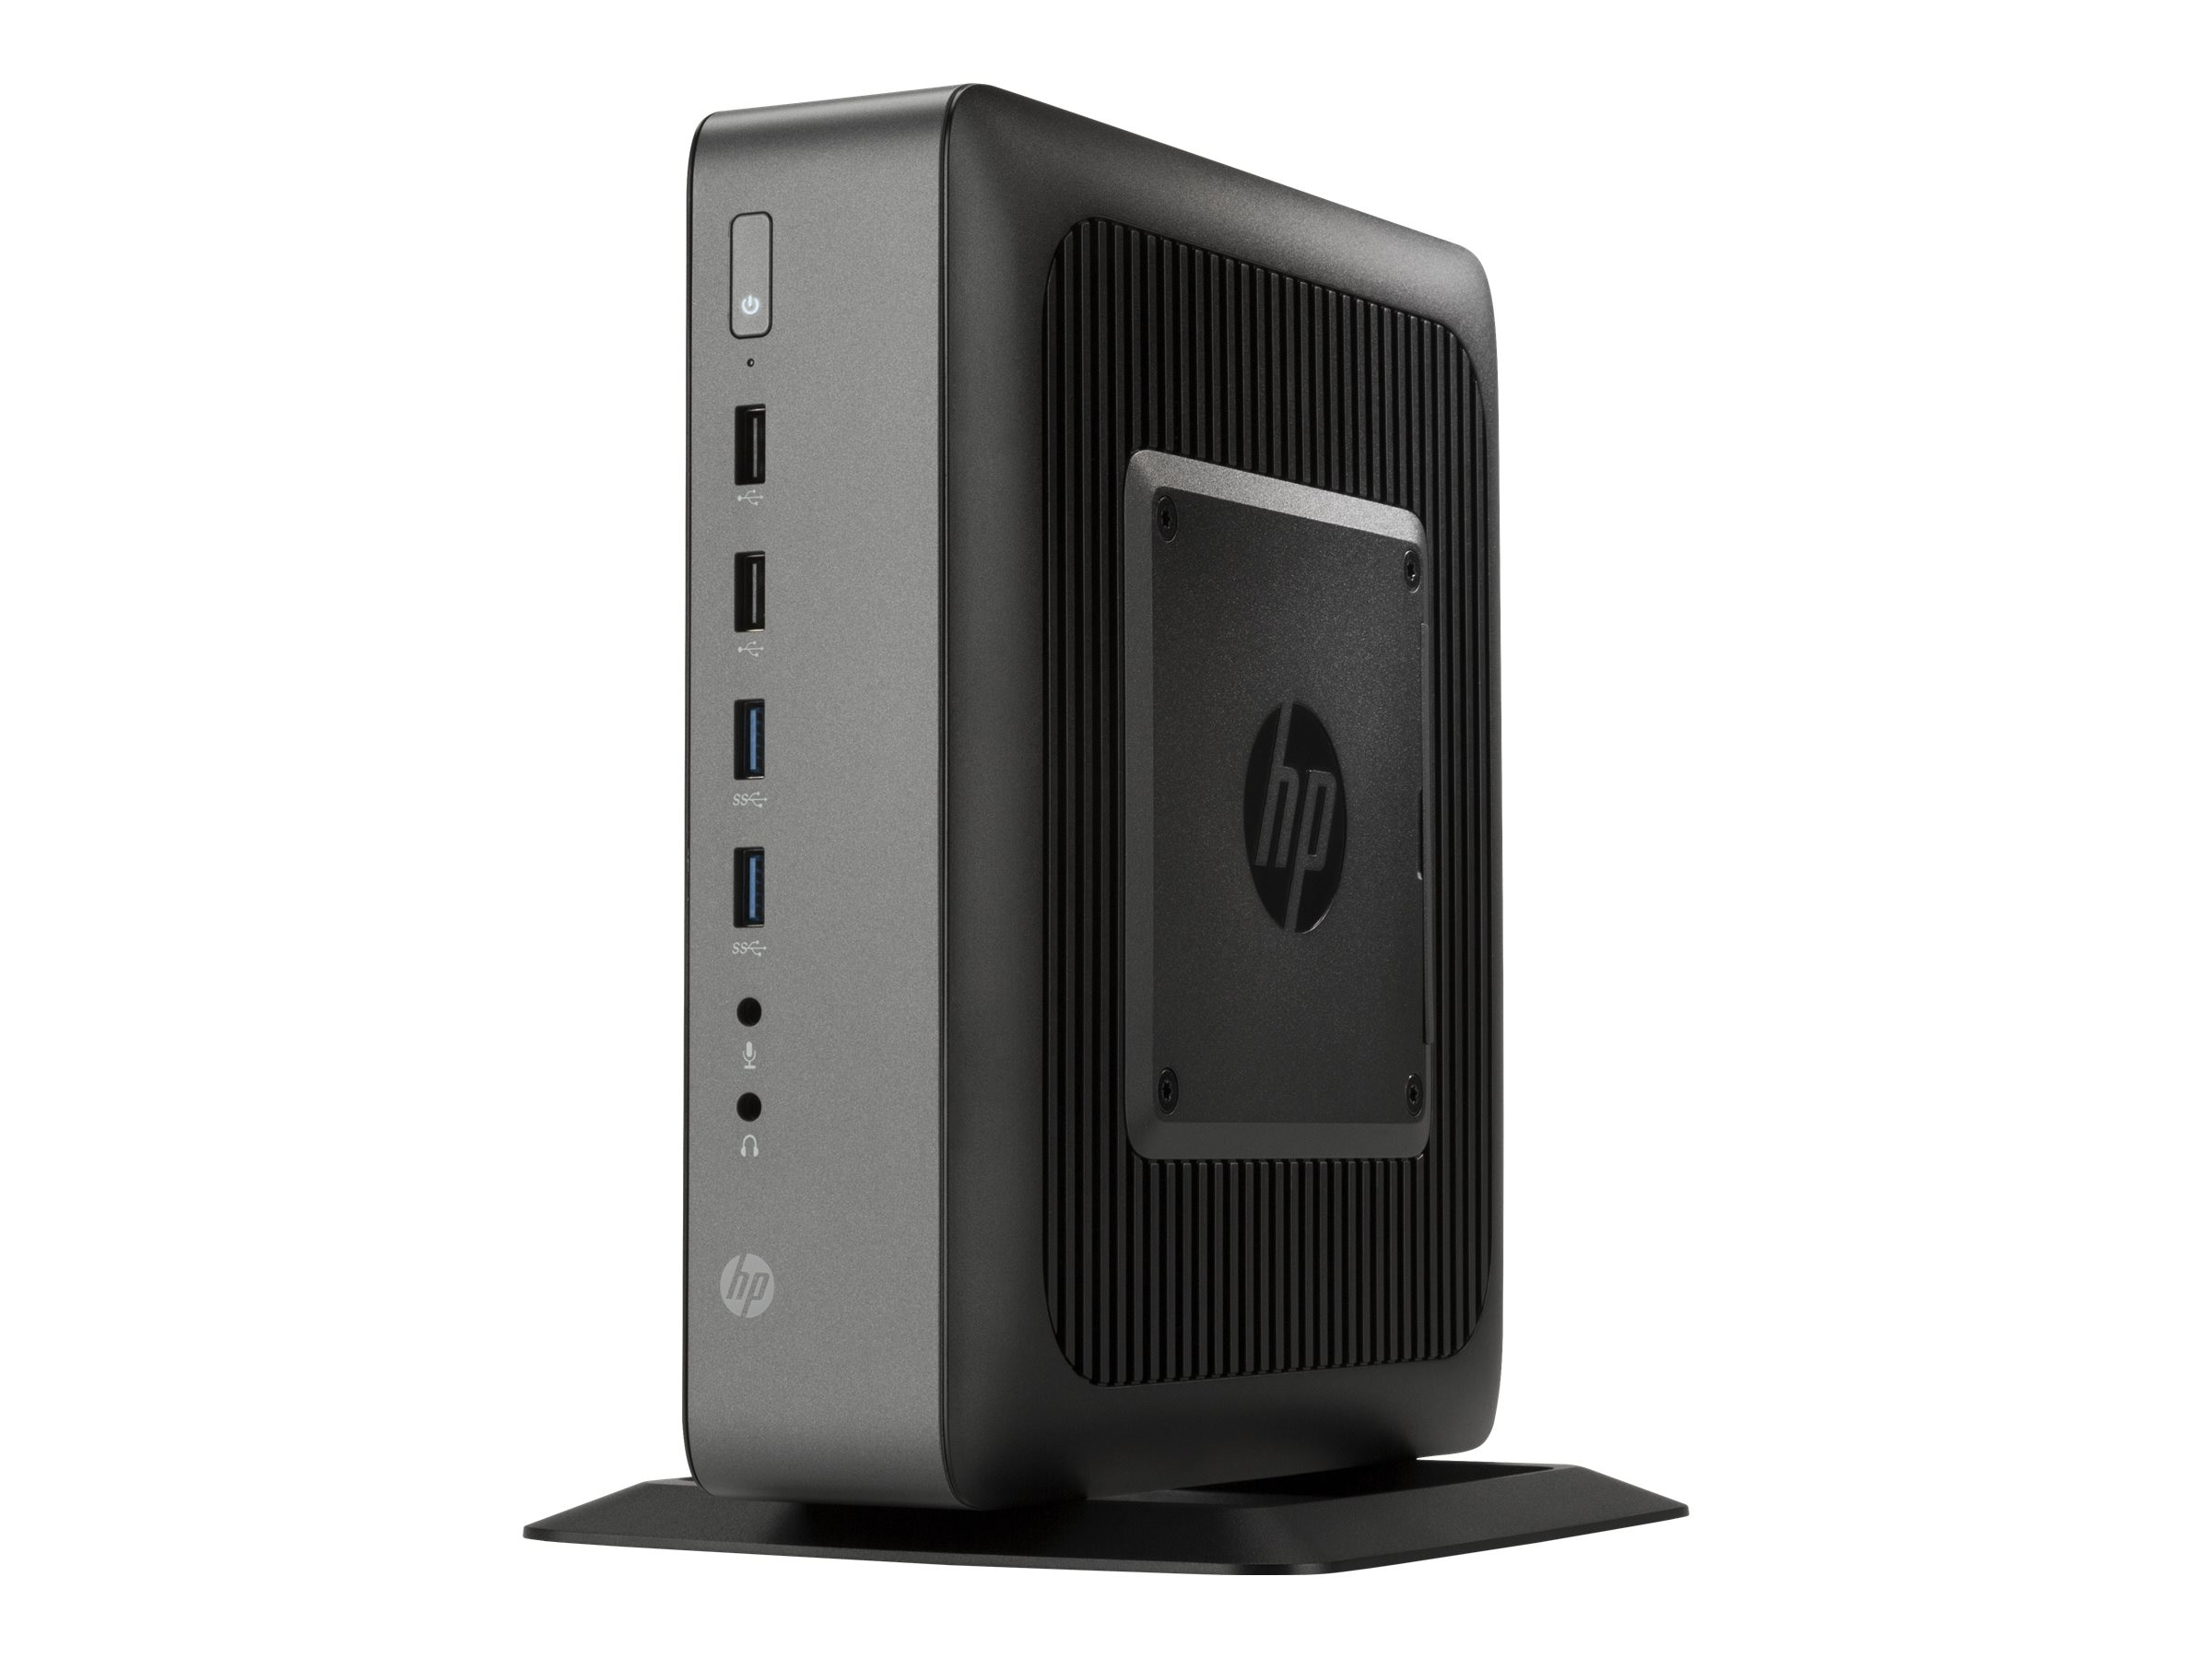 HP t620 PLUS Flexible Thin Client AMD QC GX-420CA 2.0GHz 8GB 64GB Flash HD8400E VGA W10 IoT, V2V62UA#ABA